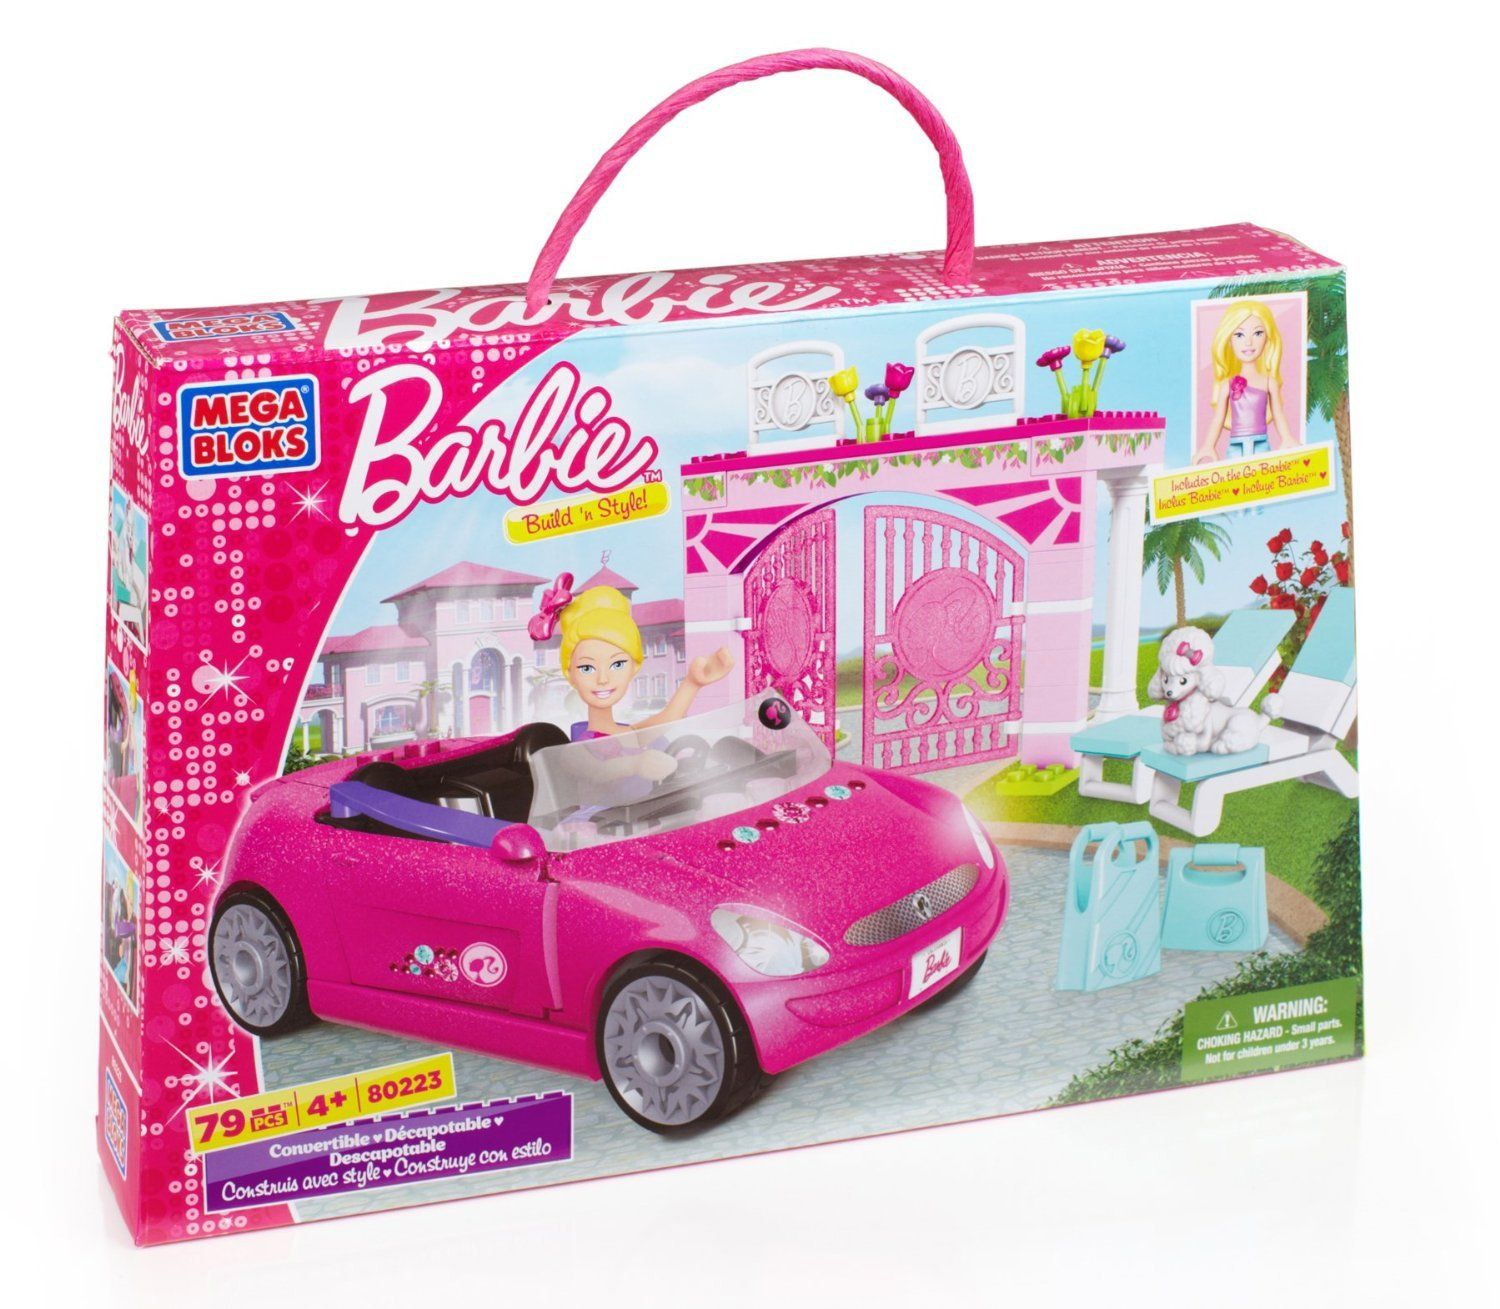 Bargain Mega Bloks Barbie Build N Style Convertible 9 99 At